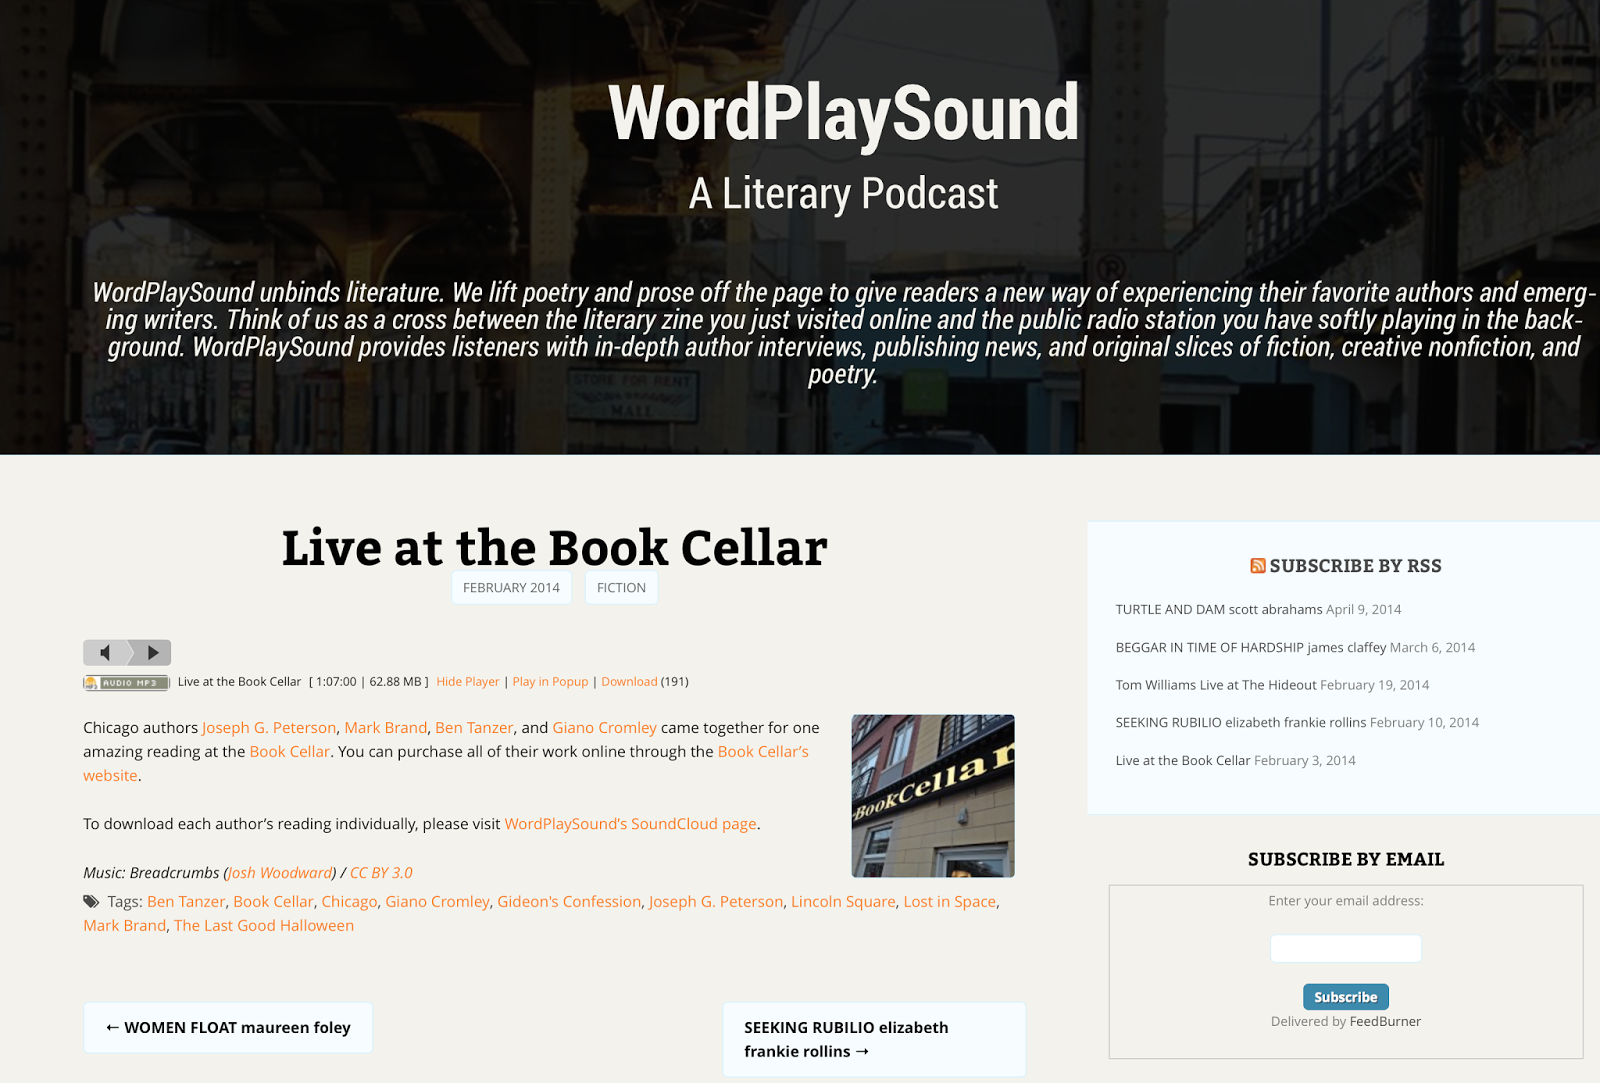 http://www.wordplaysound.com/live-at-the-book-cellar/